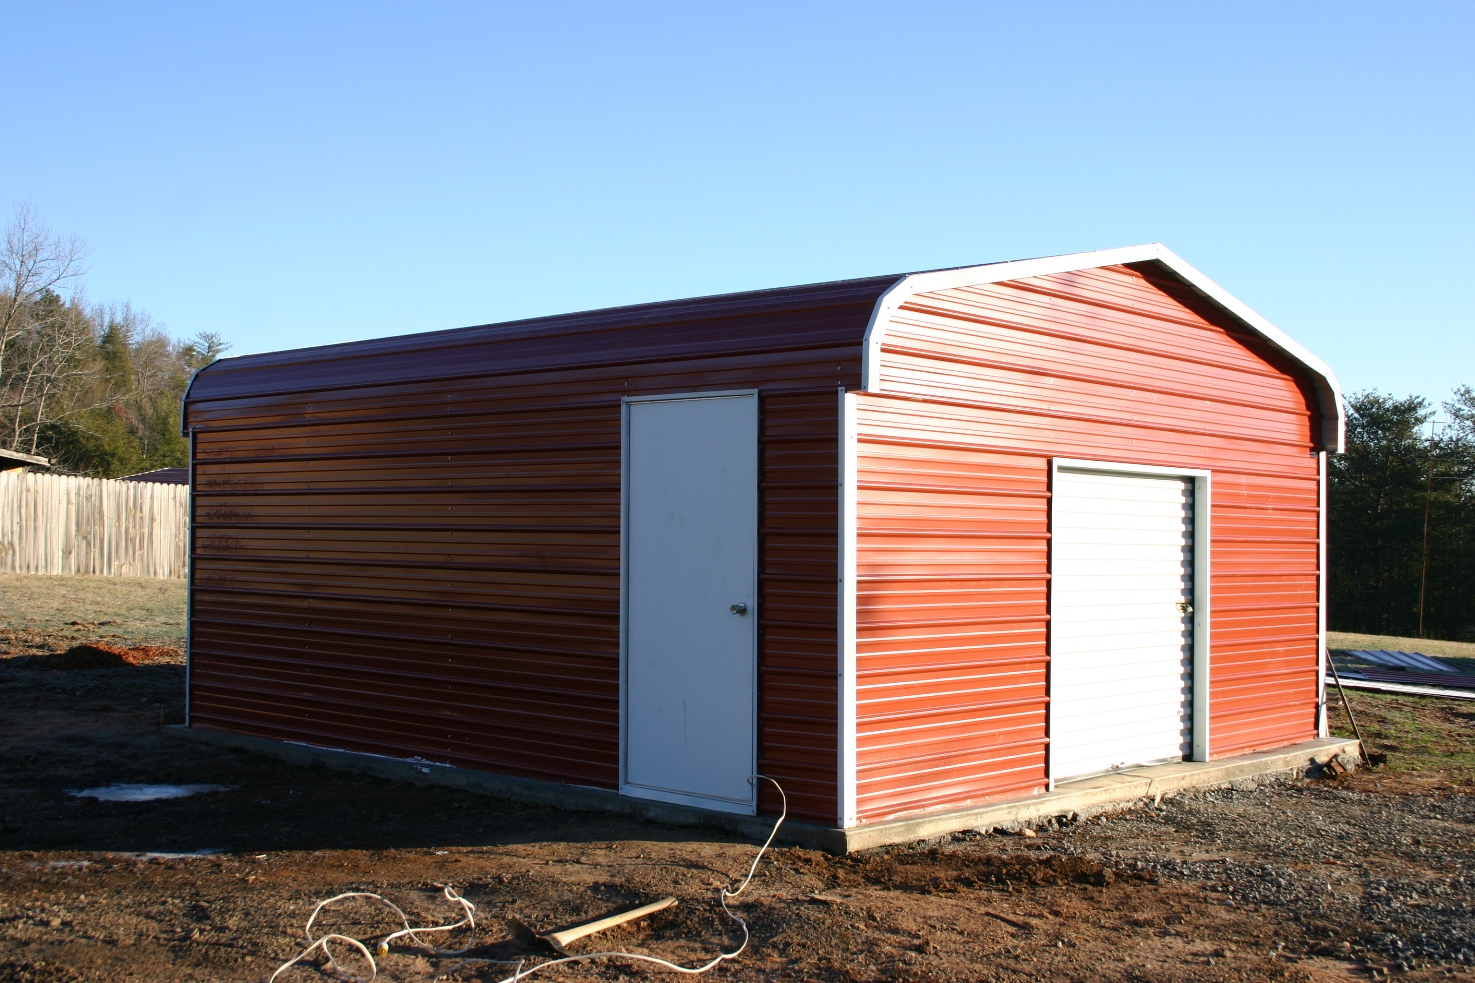 Metal motorcycle garage with red walls and white roll-up garage door.